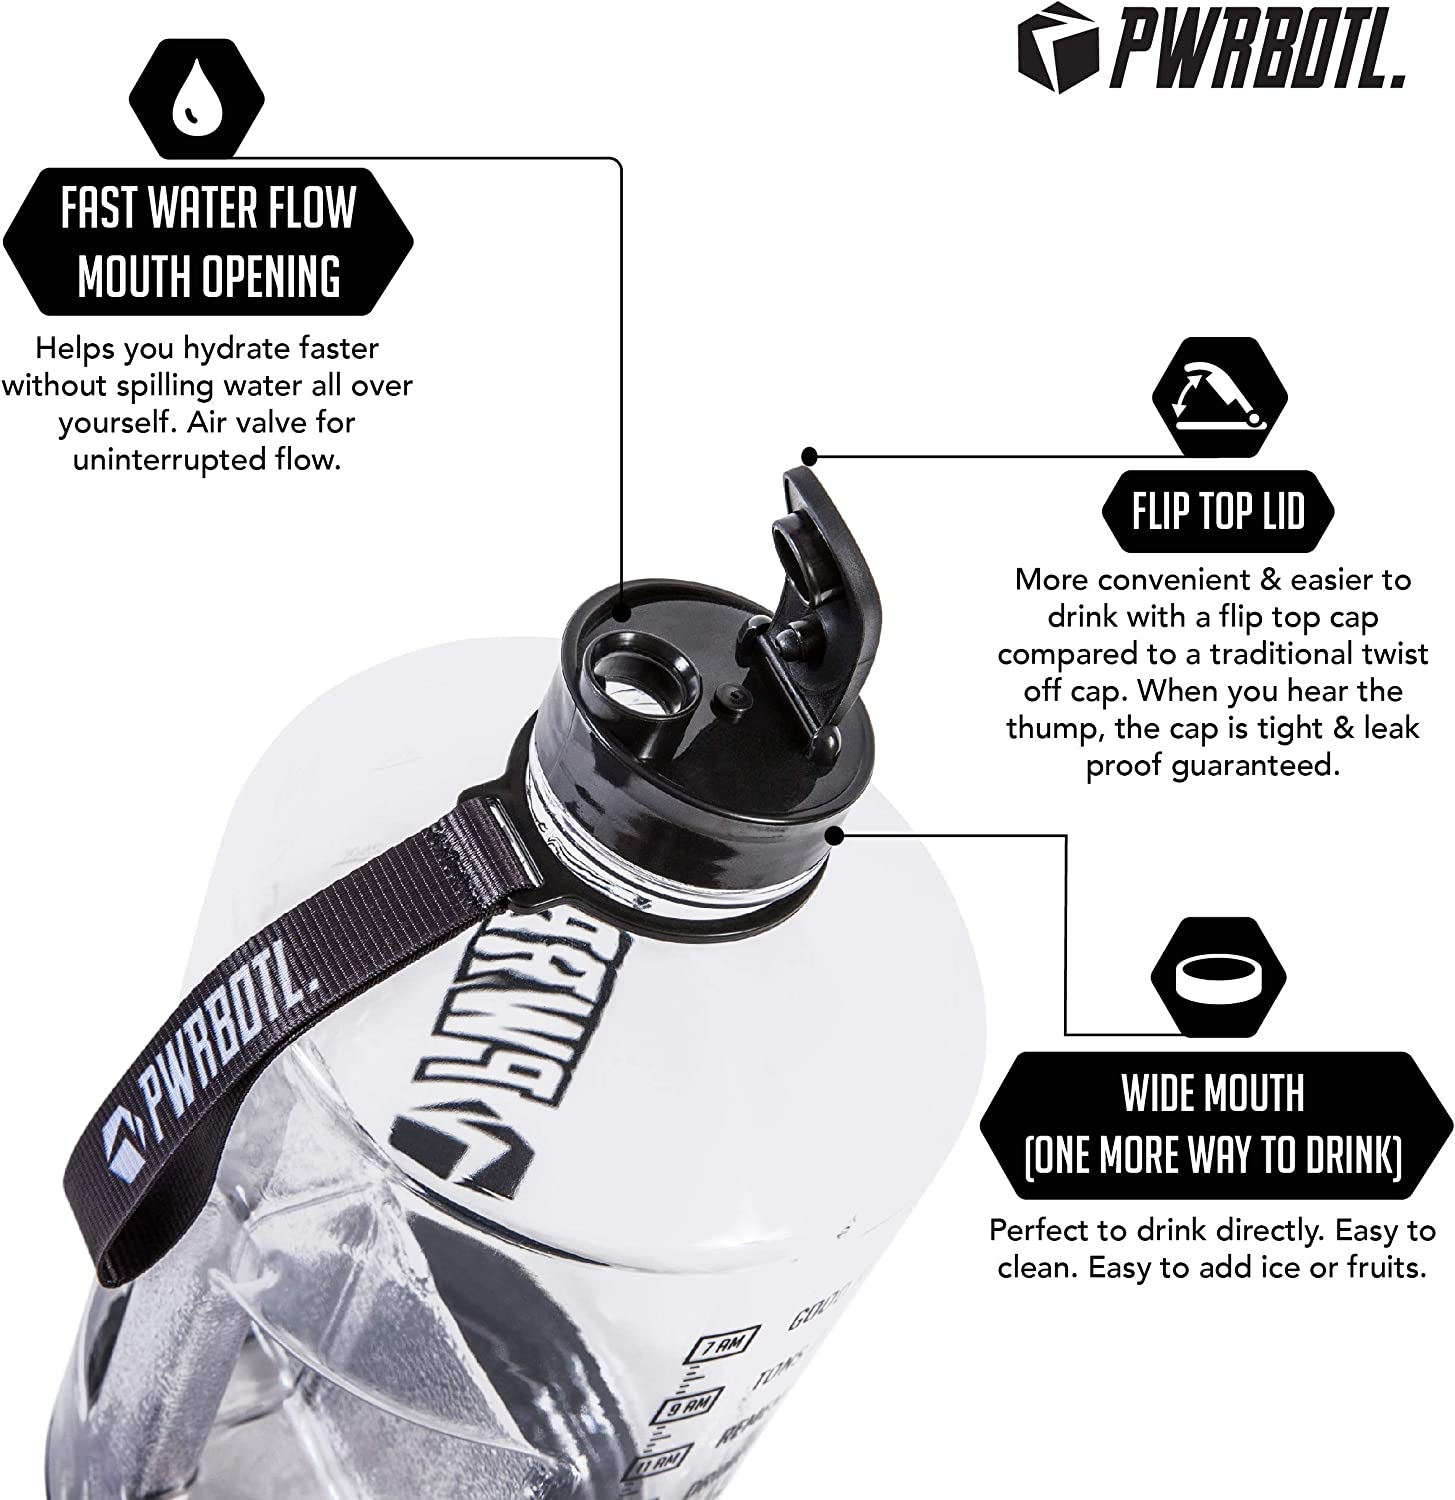 Drop Resistant PWRBOTL 1 Gallon Water Bottle with Time Marker Large BPA Free Jug Water Gallon Bottle//Gallon Water Jug Helps You to Drink More Water 128 oz Leak Proof Motivational Water Bottle